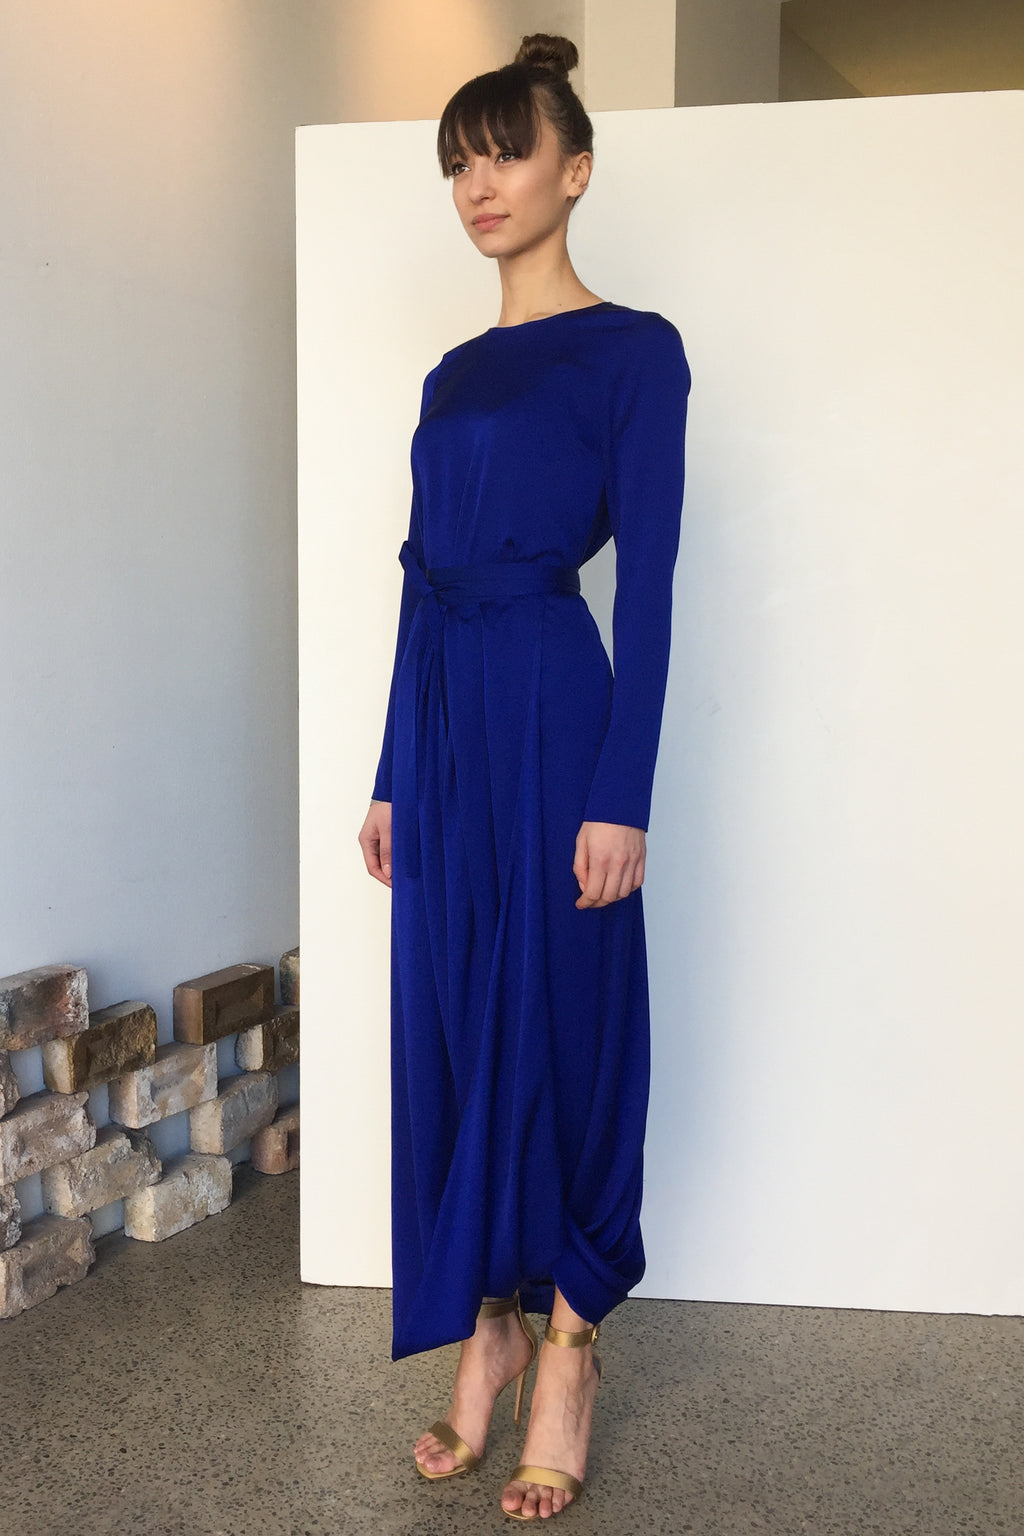 Topaz Silk Dress - Electric Blue | CARL KAPP